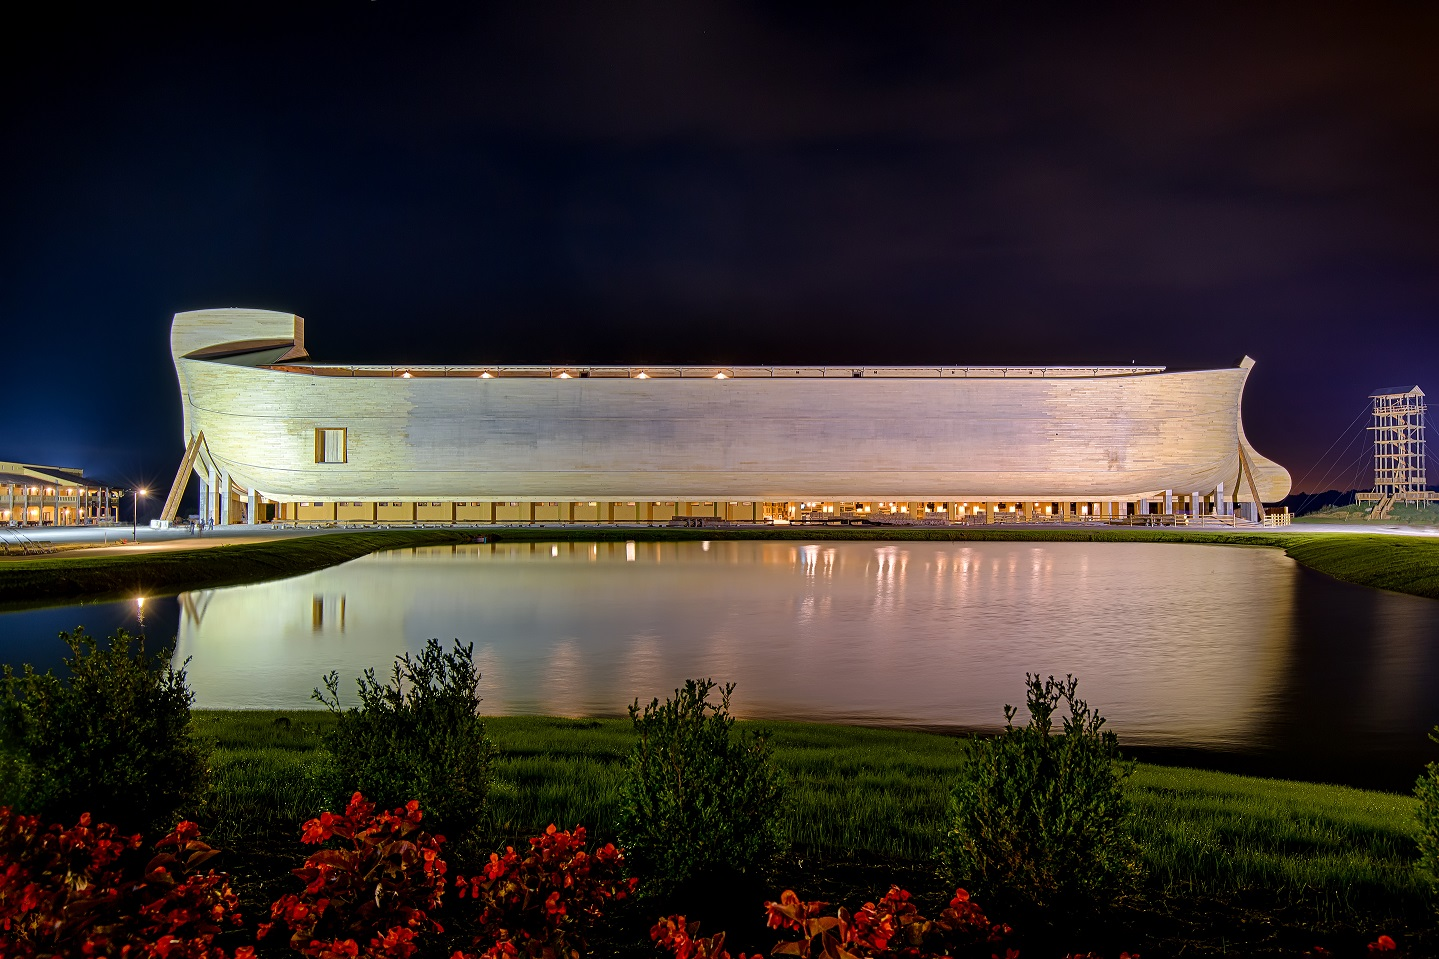 2016-0707 Ark at Night - FULL Res.jpg